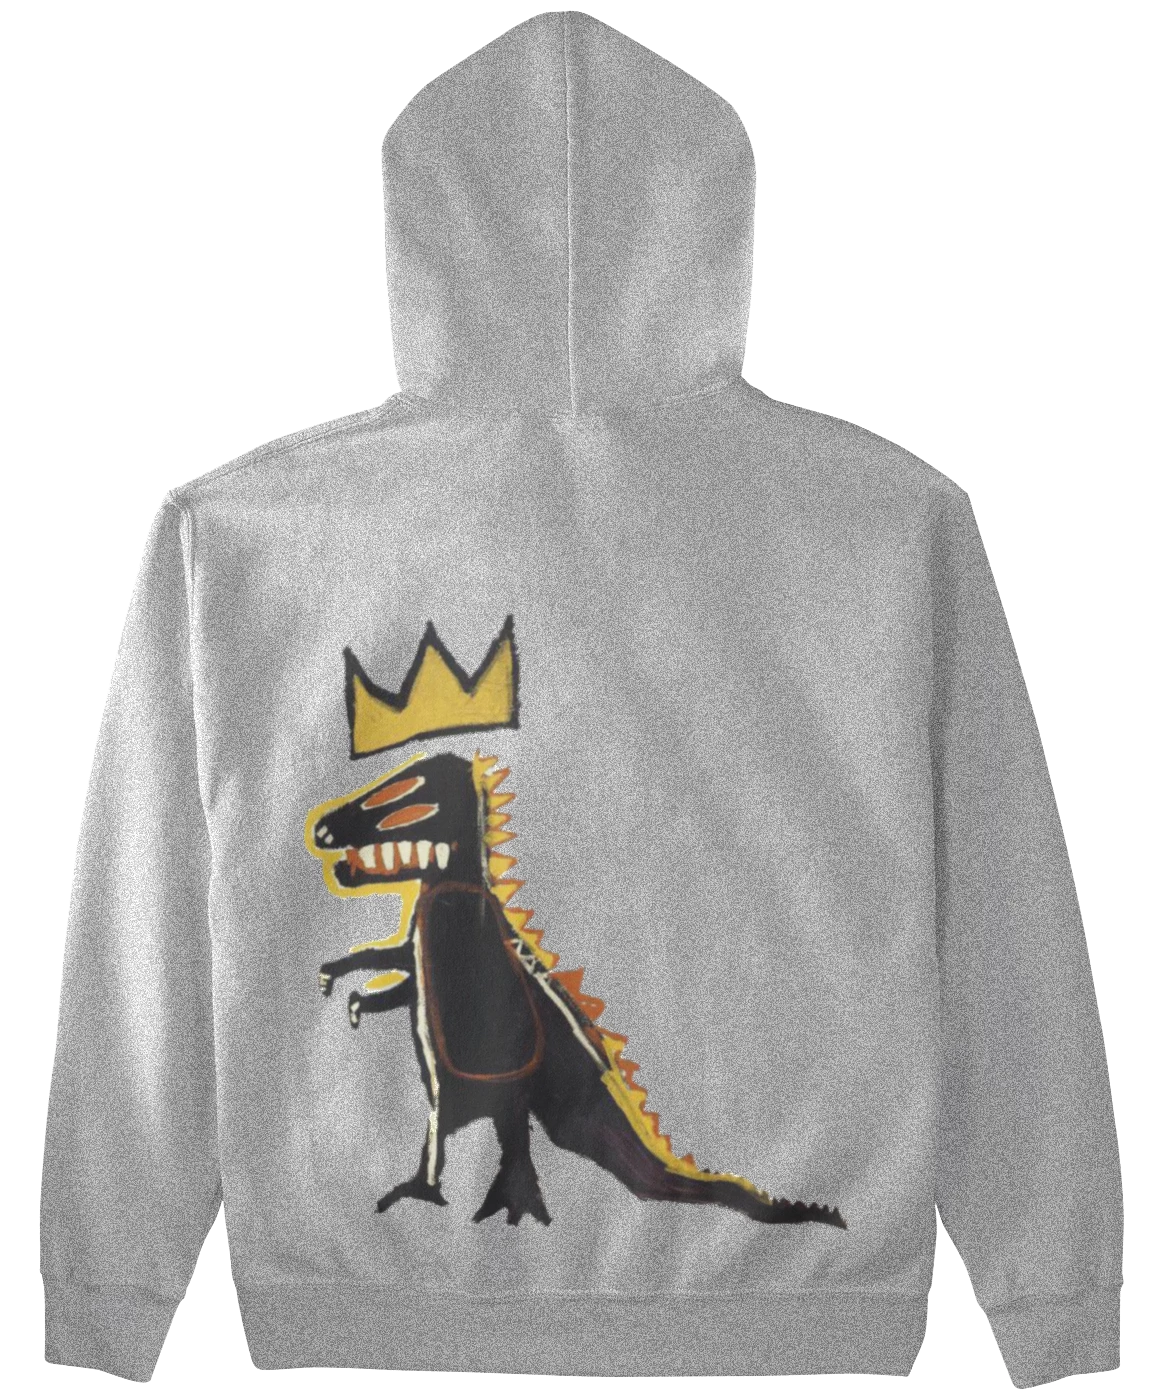 Jean-Michel Basquiat Dinosaur Hoodie (Kids) - The Brant Foundation Shop